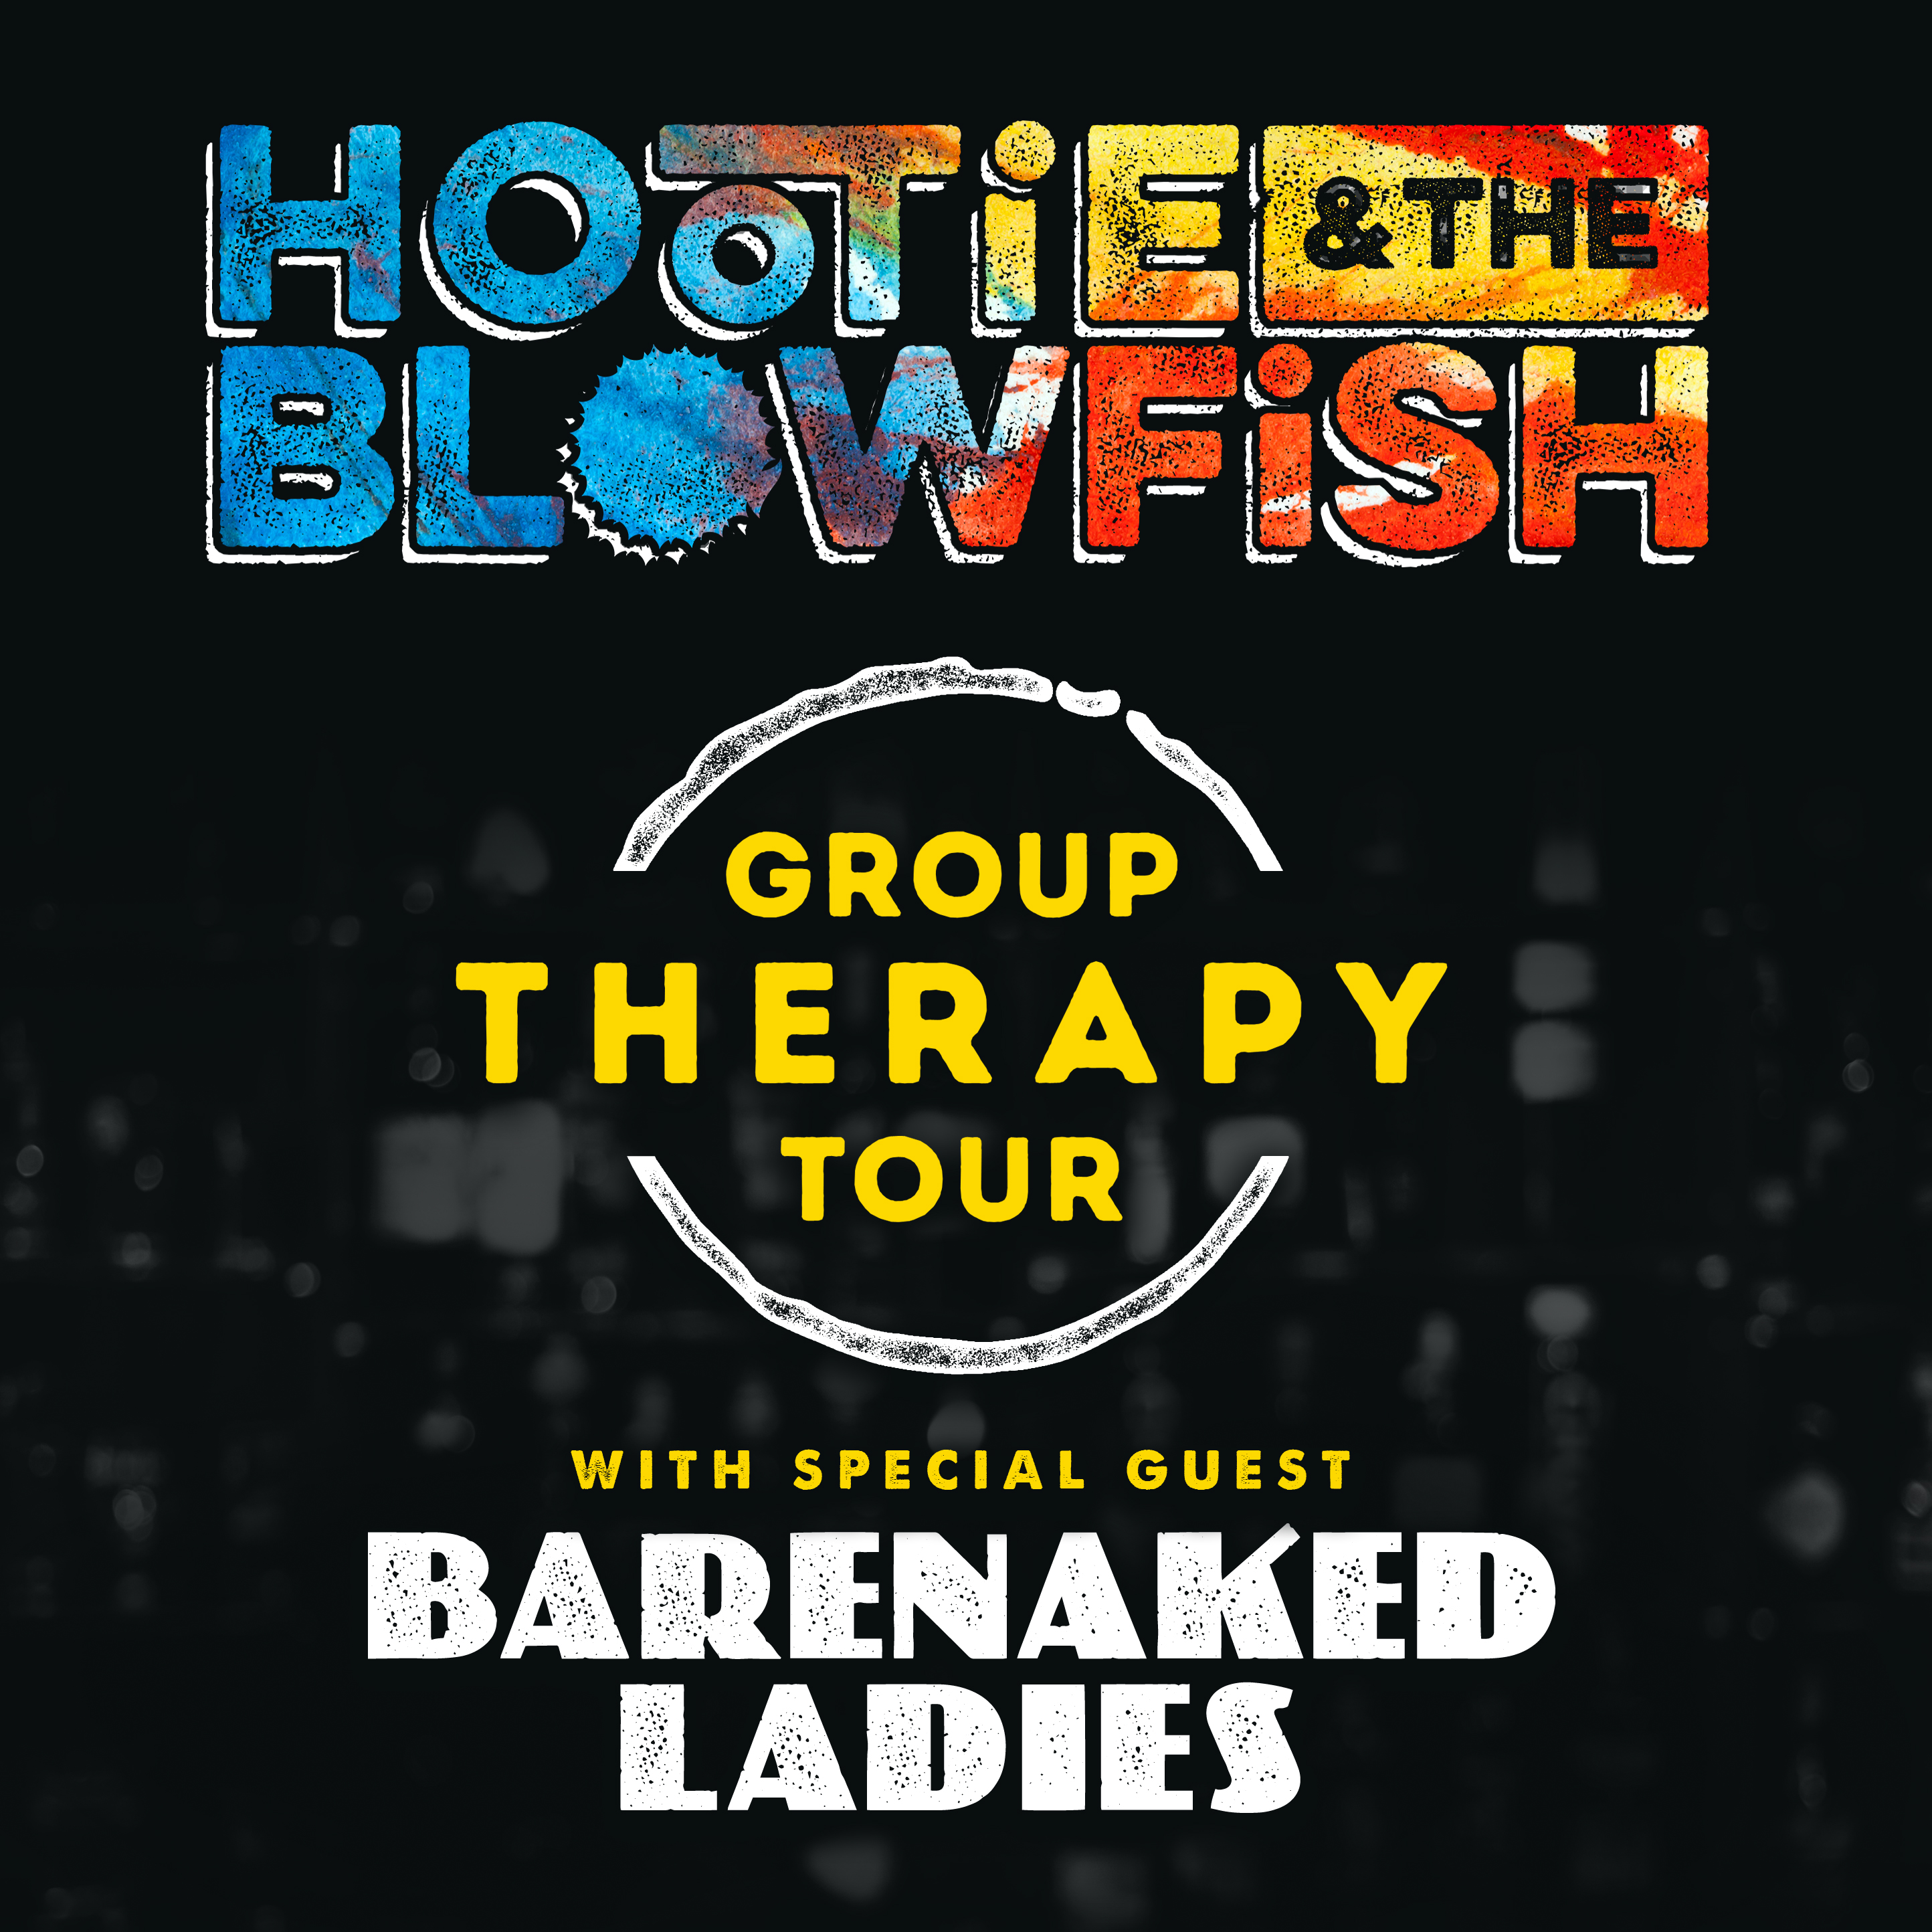 Hootie & The Blowfish Add 3rd Columbia, SC Date